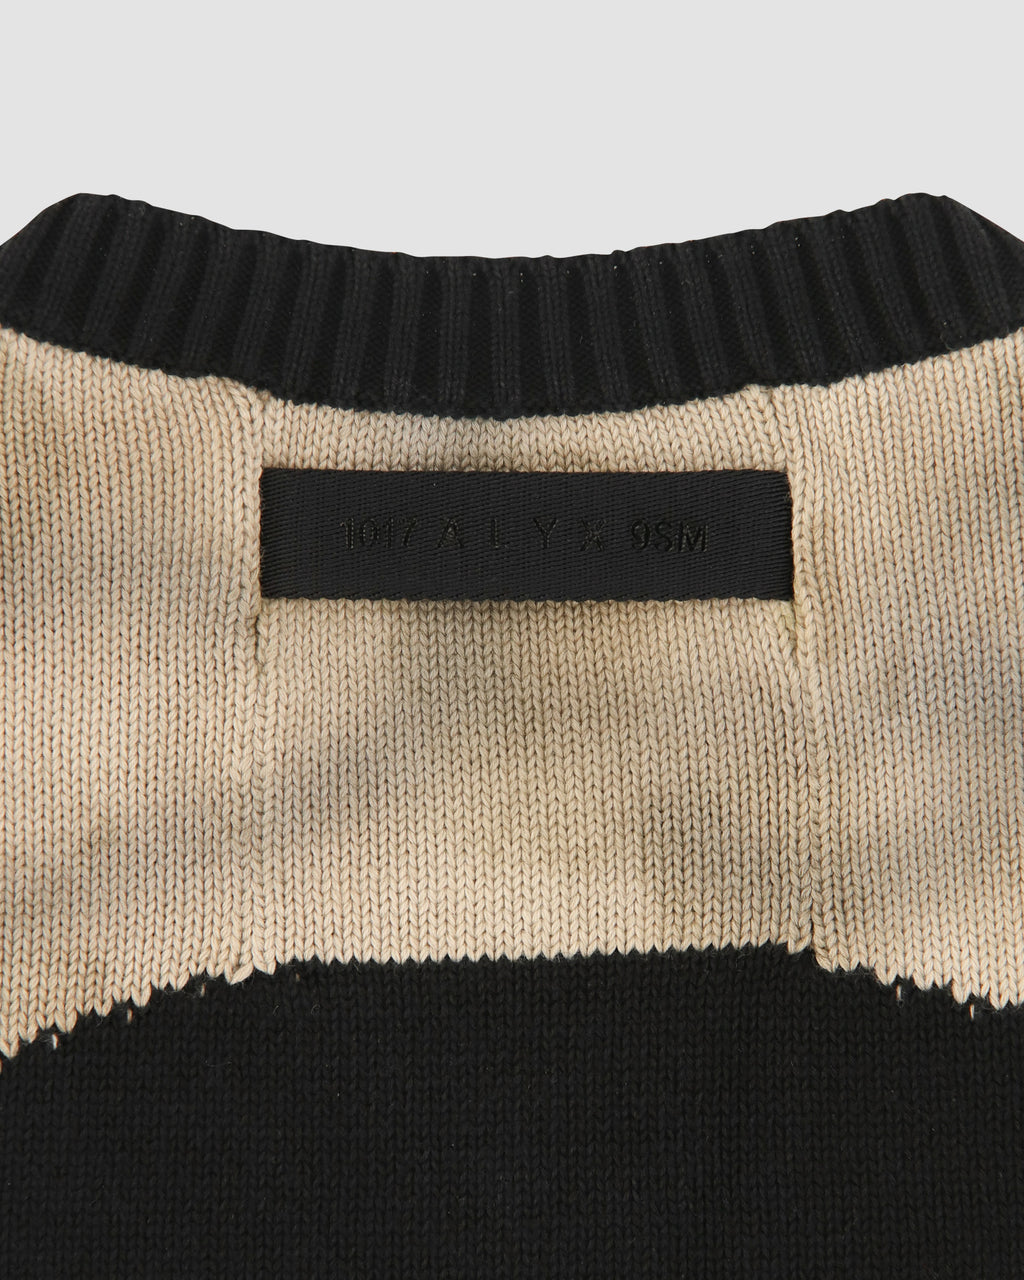 1017 ALYX 9SM | WARP SPEED SWEATER | Knitwear | BLACK, Google Shopping, KNITWEAR, Man, MEN, S20, S20EXSH